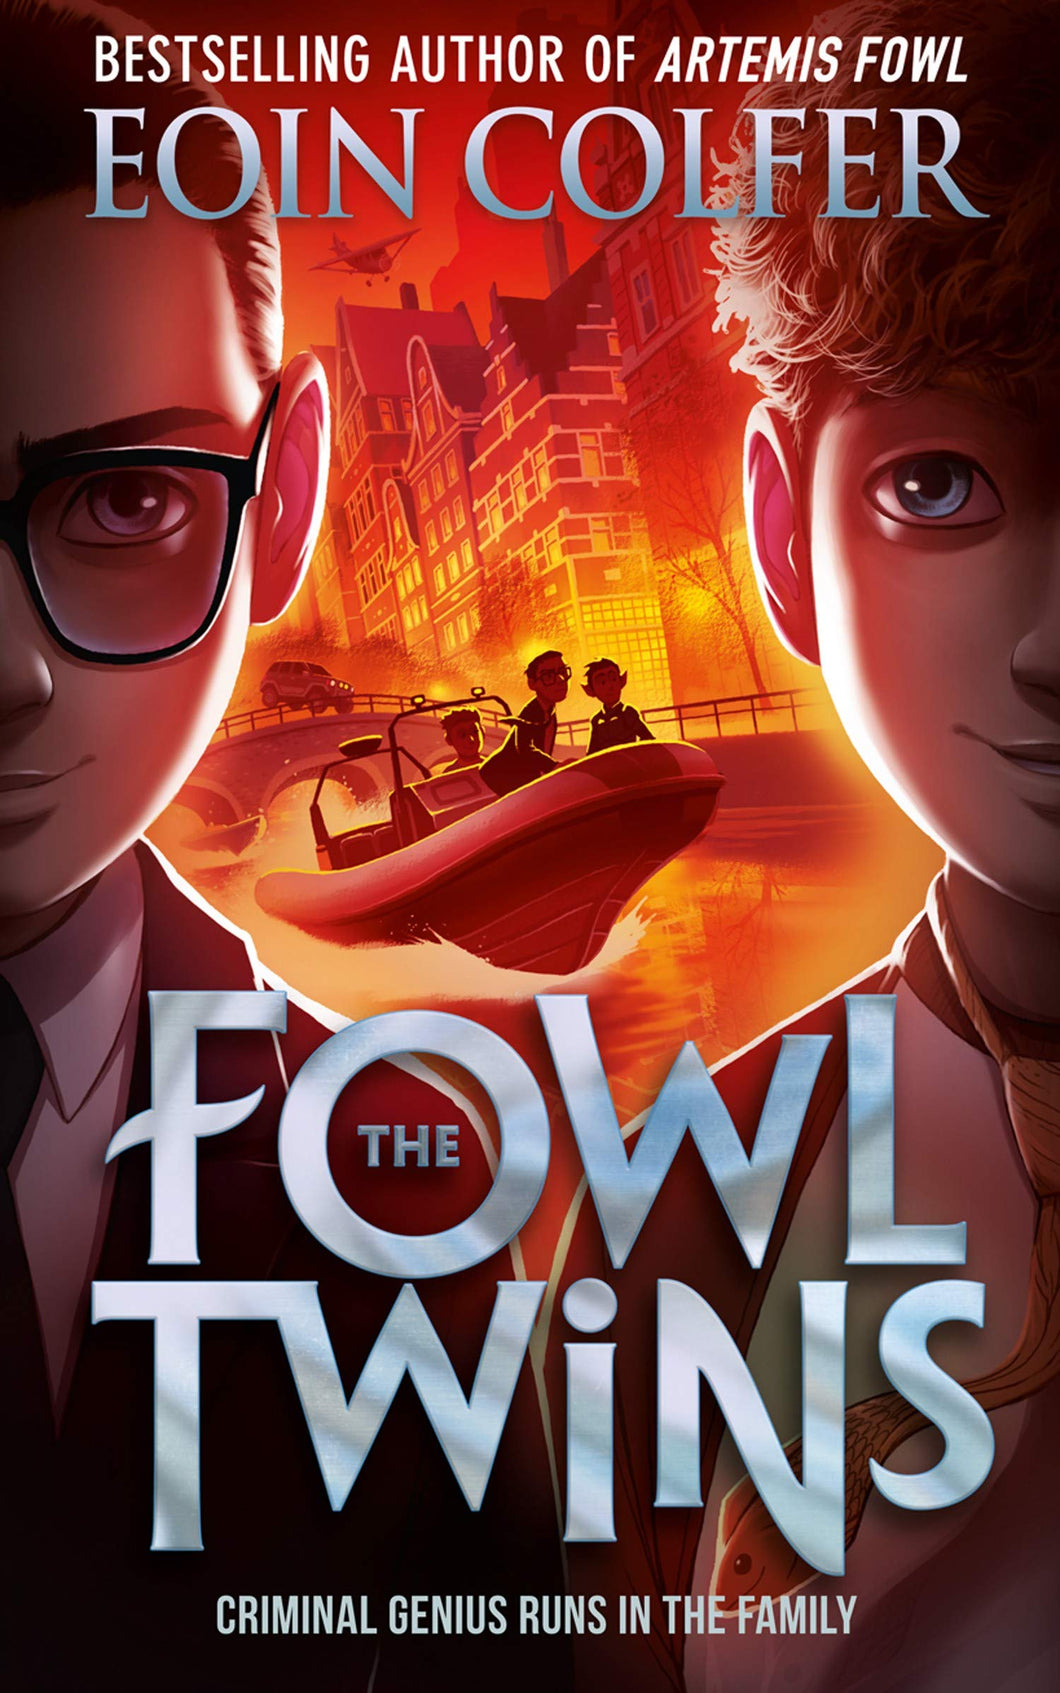 The Fowl Twins (Signed copy)